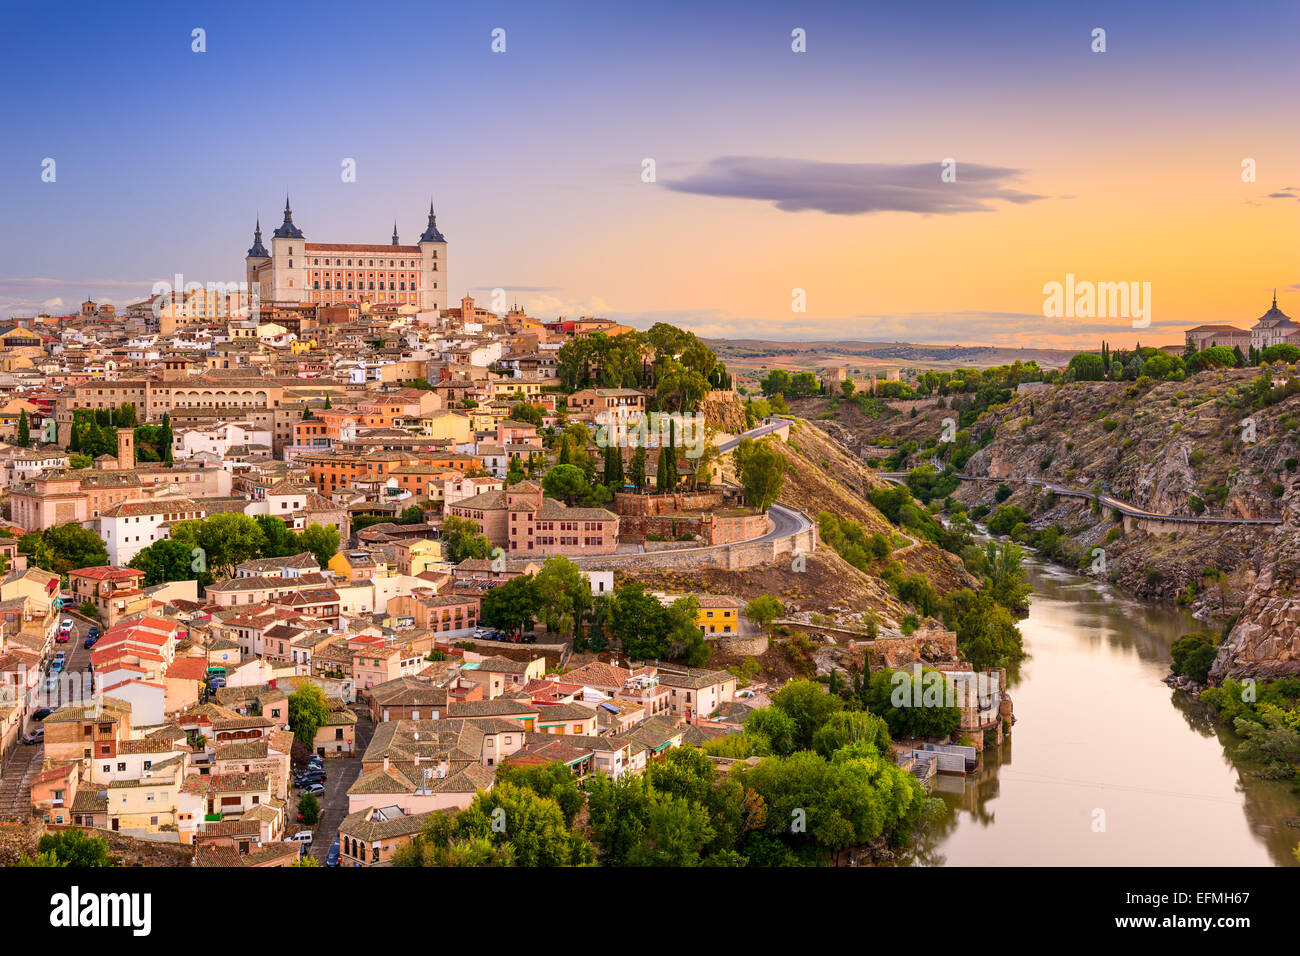 Toledo, Spain old city over the Tagus River. Stock Photo